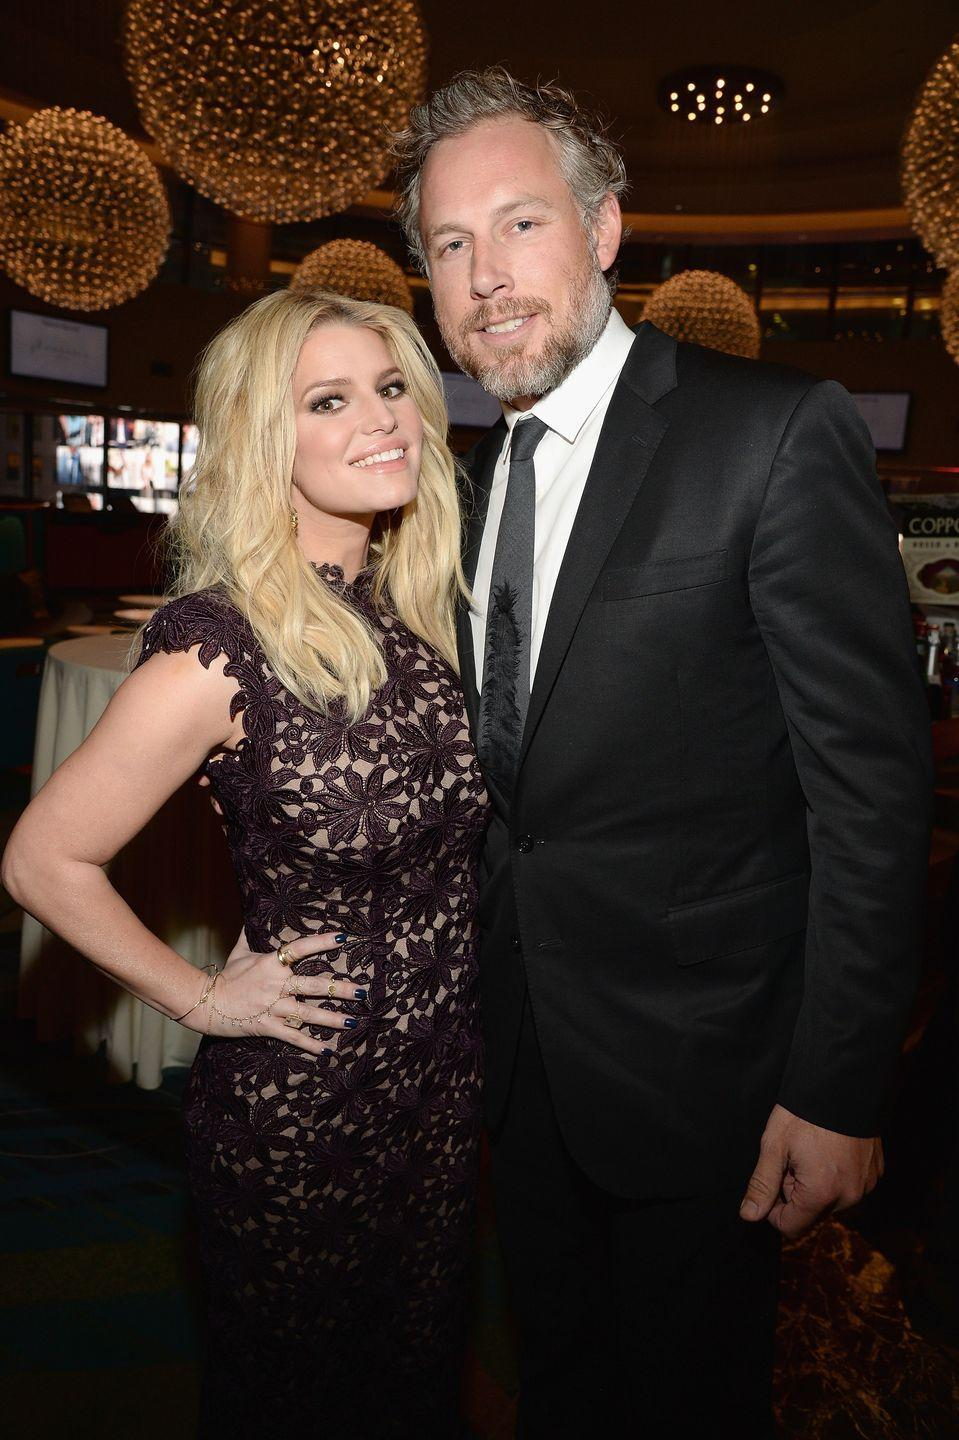 "<p>Over four lovely days, this couple and their 275 guests celebrated their <a href=""https://www.eonline.com/news/557528/inside-jessica-simpson-and-eric-johnson-s-lavish-1-4-million-wedding"" rel=""nofollow noopener"" target=""_blank"" data-ylk=""slk:life-long commitment"" class=""link rapid-noclick-resp"">life-long commitment</a> to each other with a $1.4 million extravaganza. The most expensive item? Dressing all their bridesmaids and groomsmen, which reportedly cost $750,000! </p>"